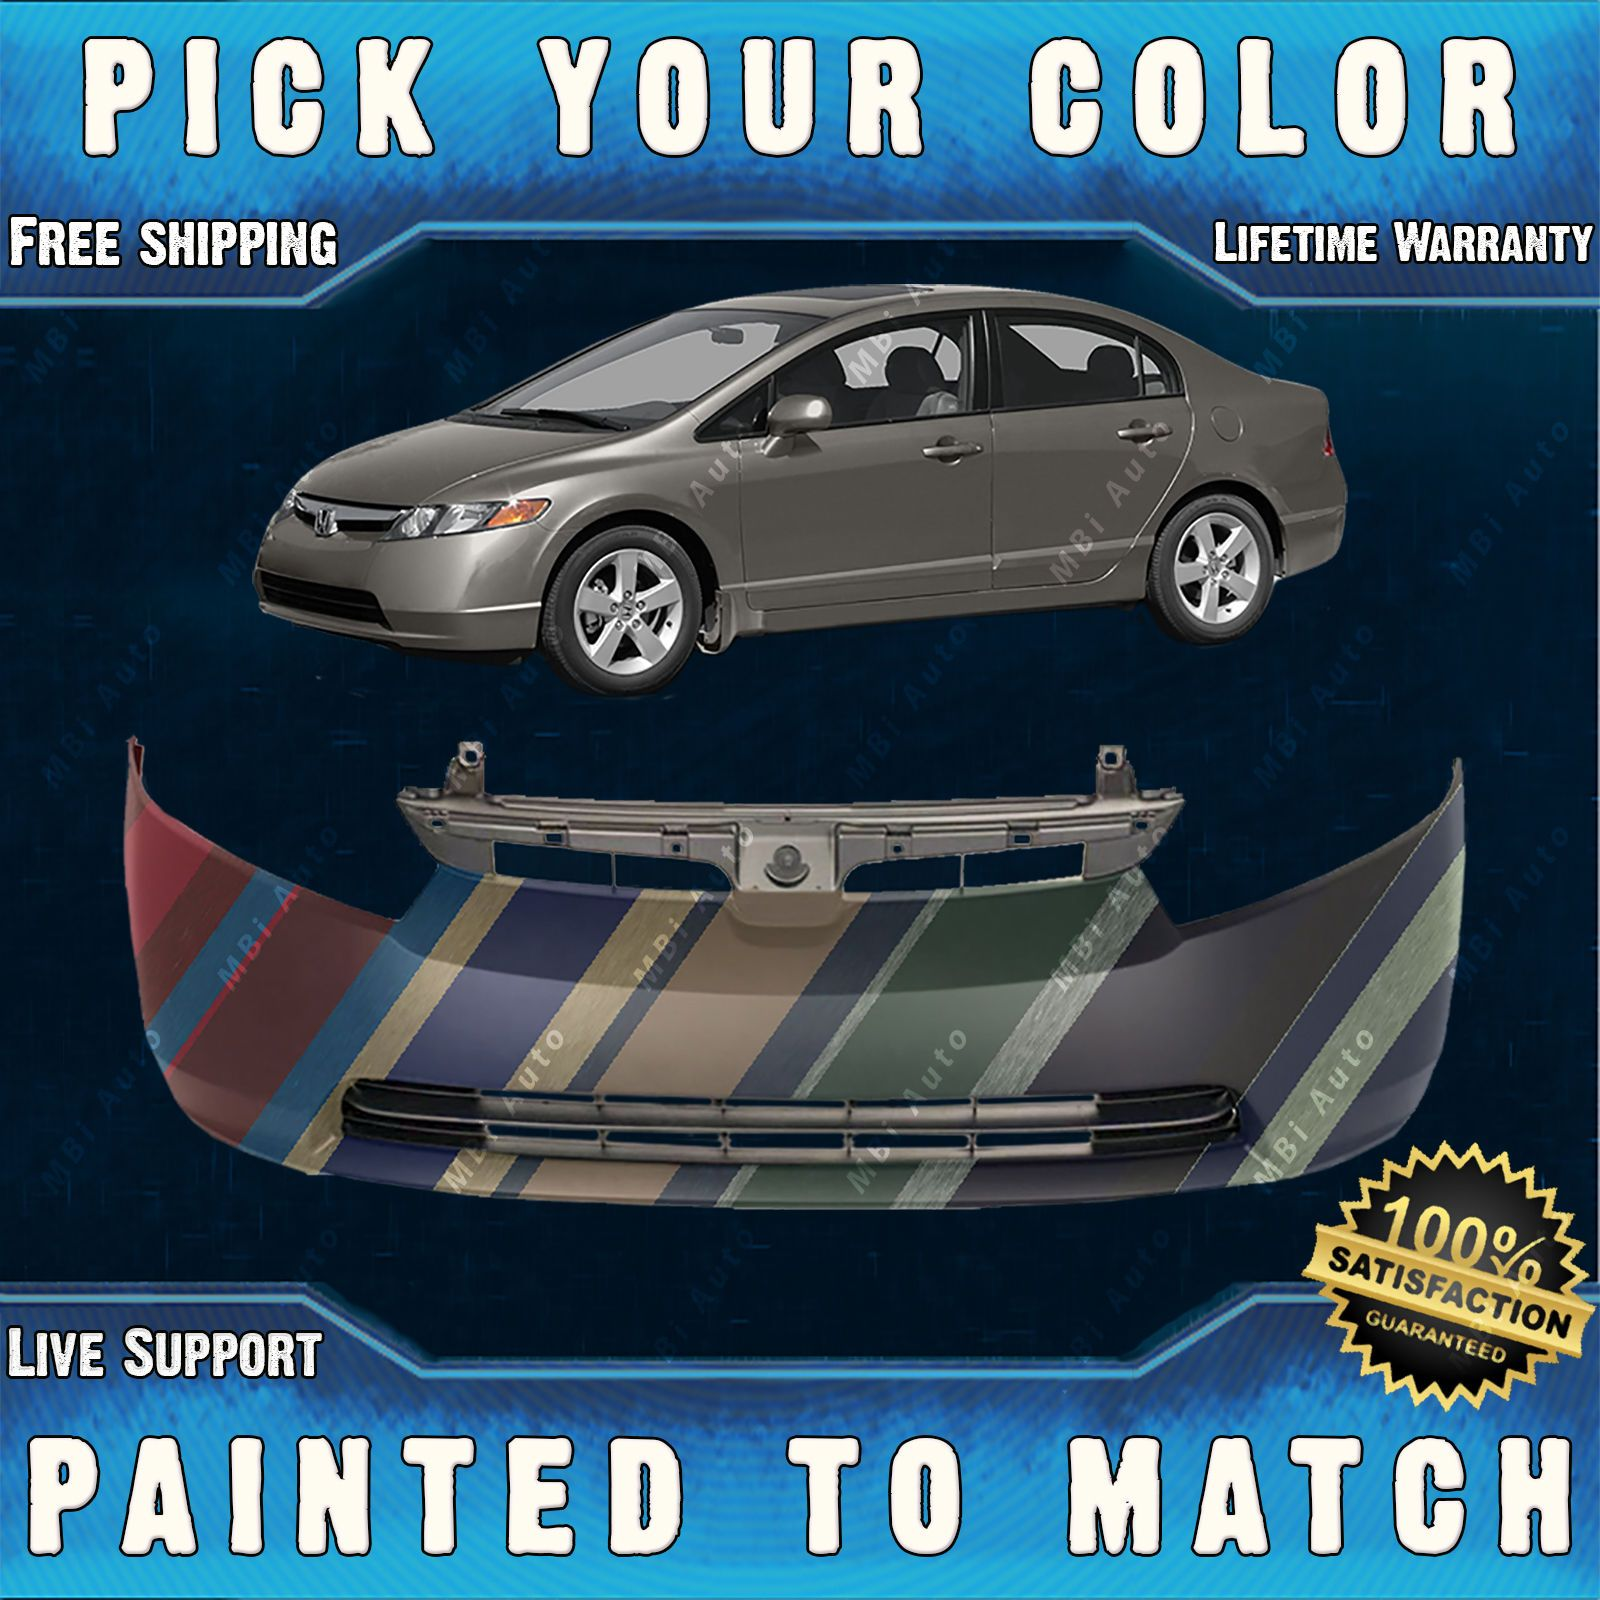 NEW Painted to Match Rear Bumper Cover for 2006 2007 Honda Accord Sedan /& Hybrid